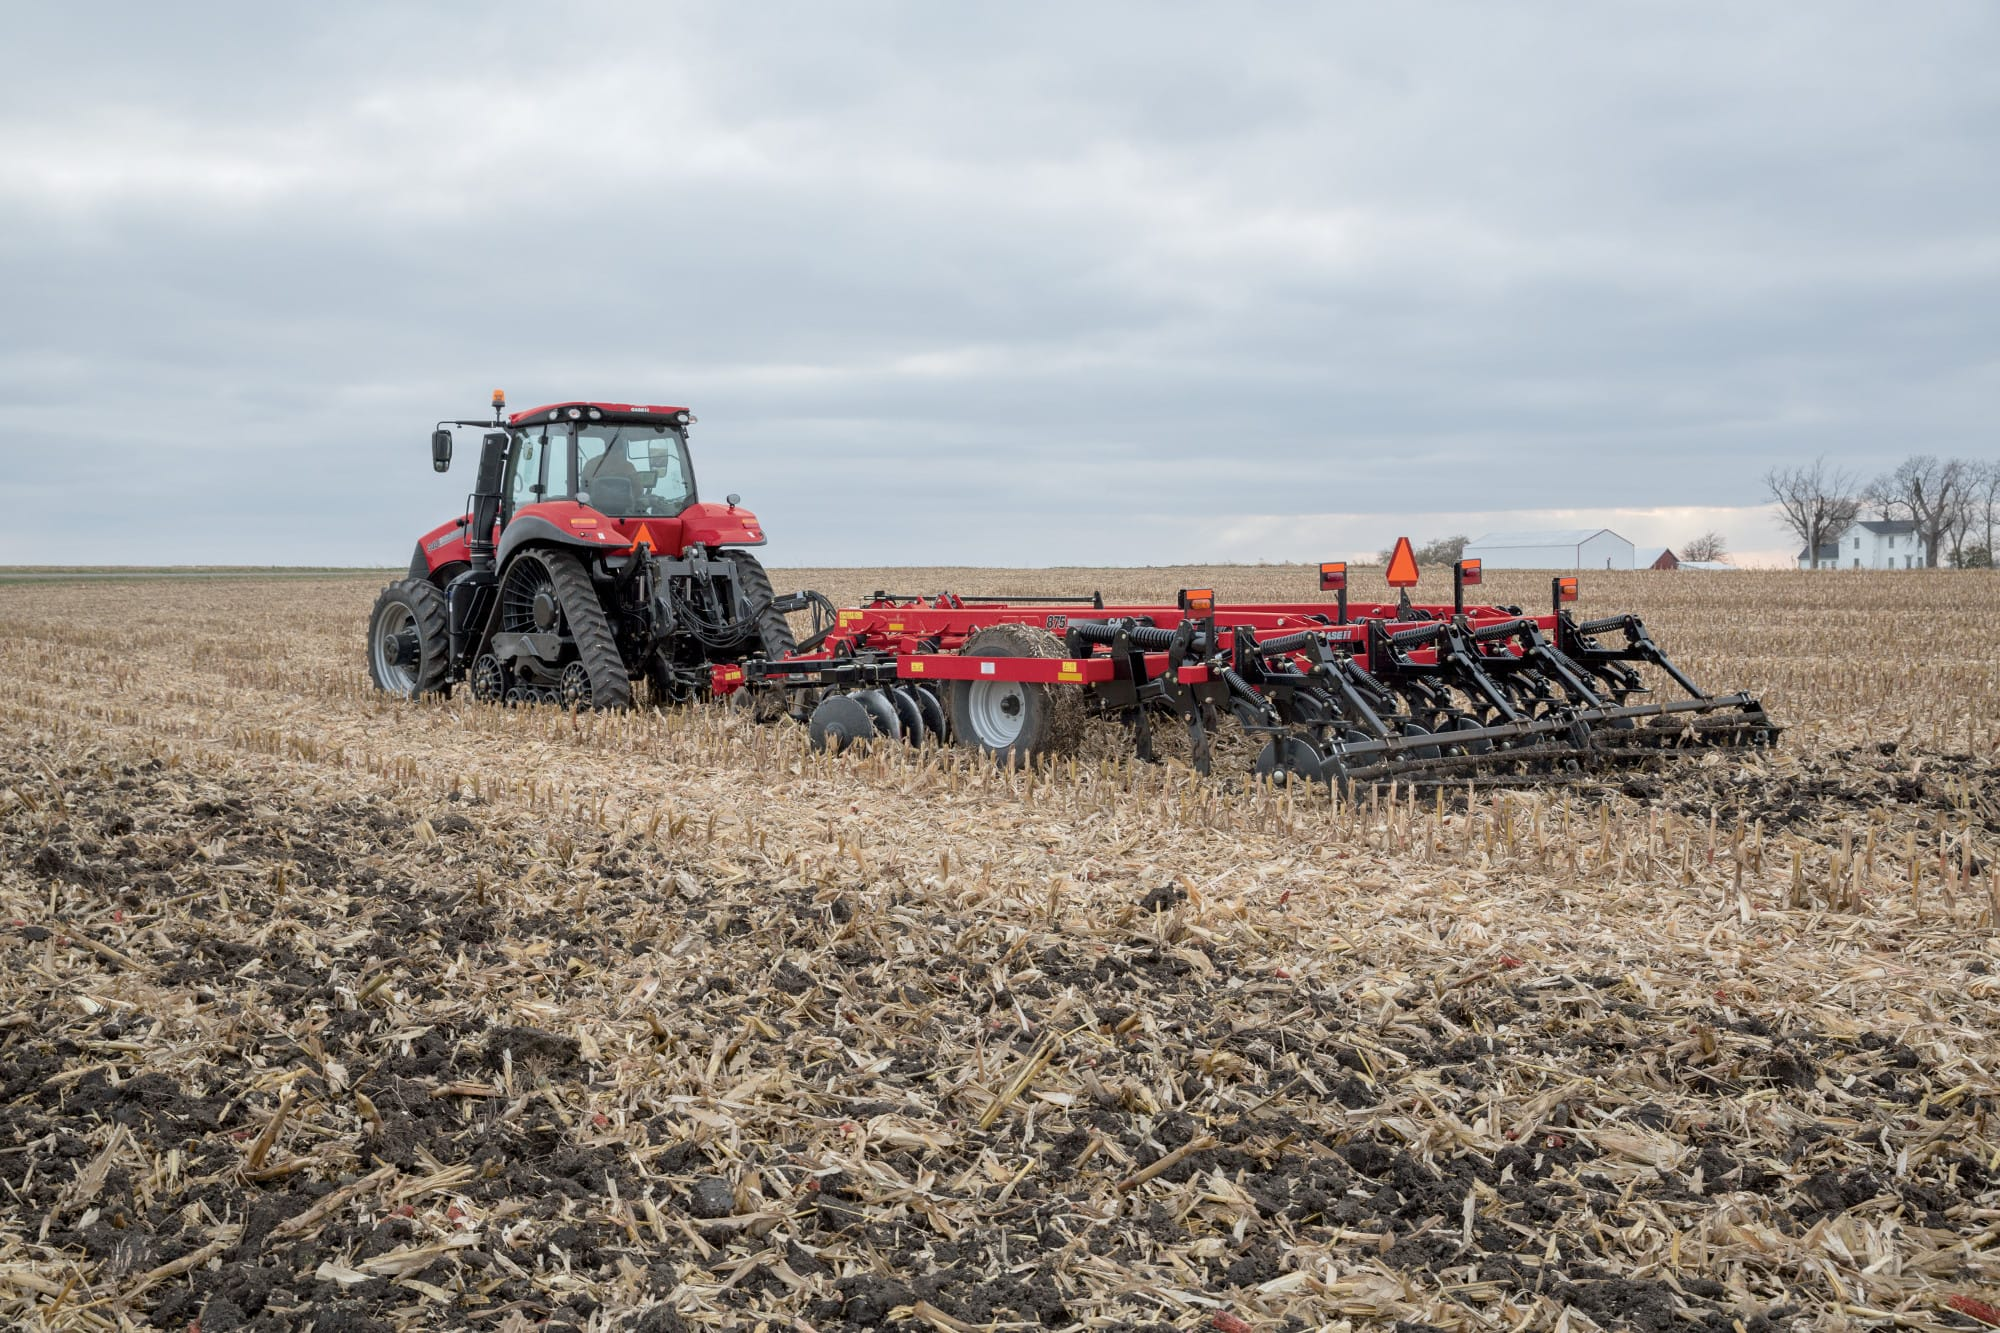 Magnum_340_Rowtrac_with_875_Ecolo Tiger_Disk_Ripper_1142_11 14?width=1280&height=562 case ih troubleshooting support information  at gsmx.co